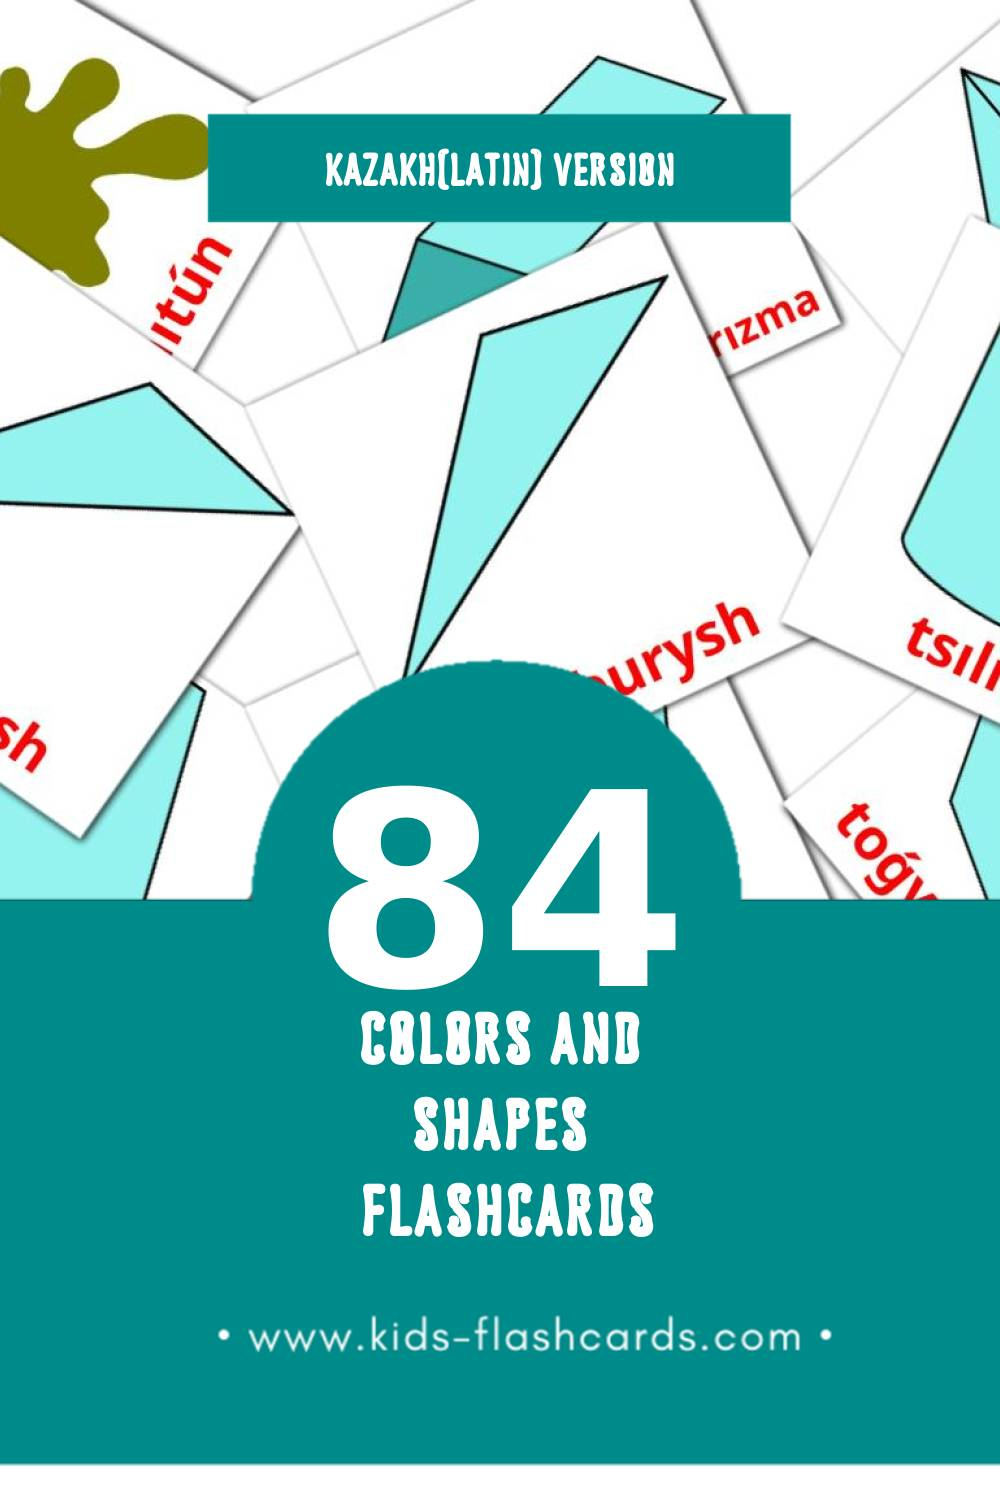 Visual  Túster men pіshіnder Flashcards for Toddlers (84 cards in Kazakh(latin))